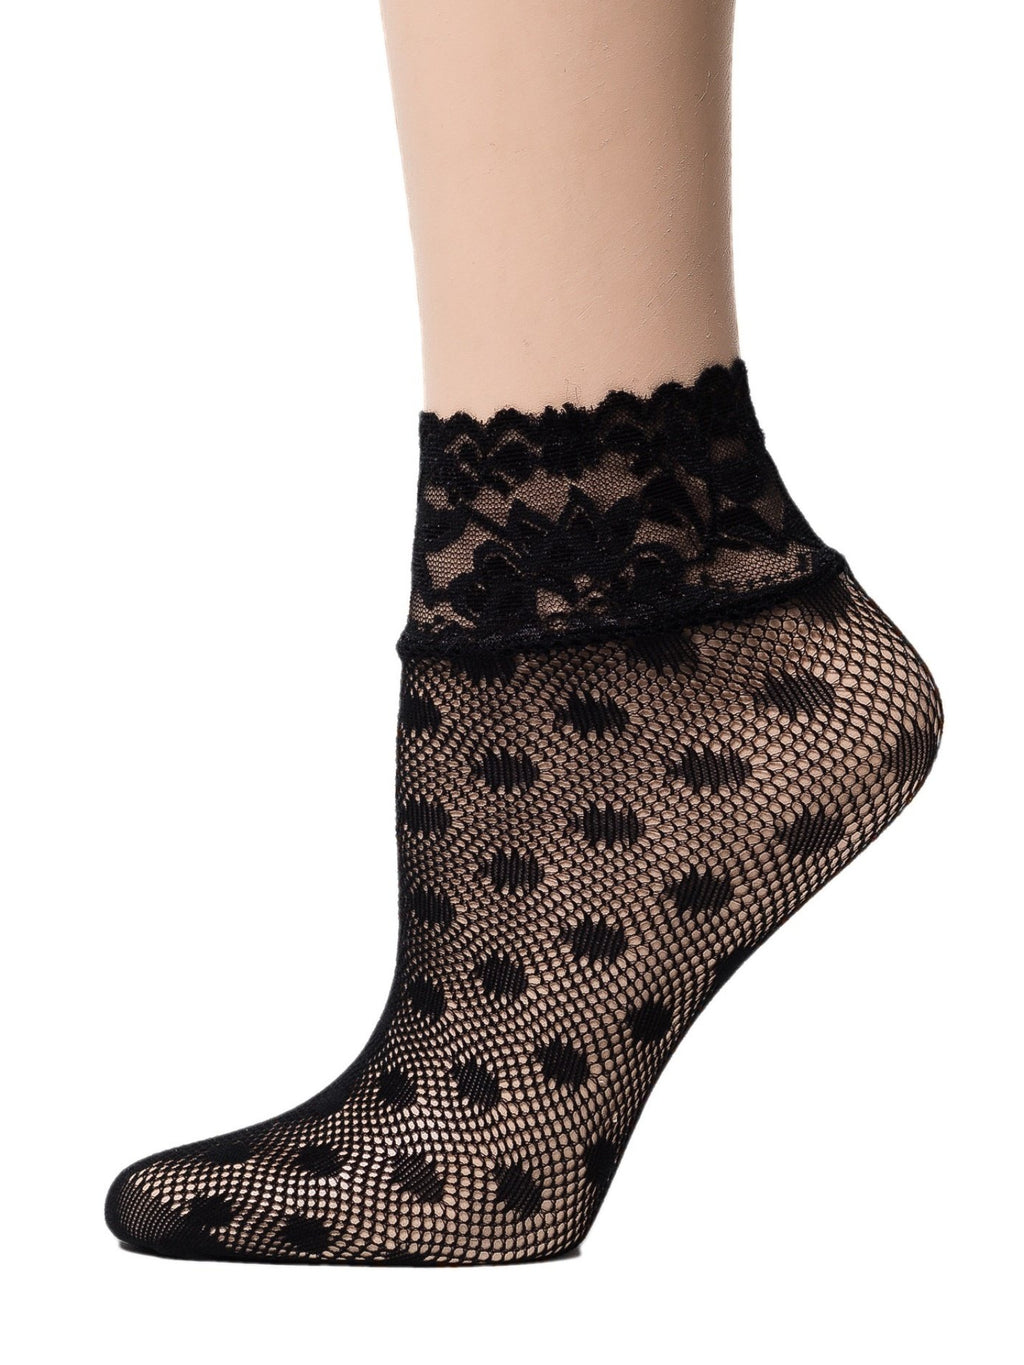 Dotted Black Mesh Socks - Global Trendz Fashion®